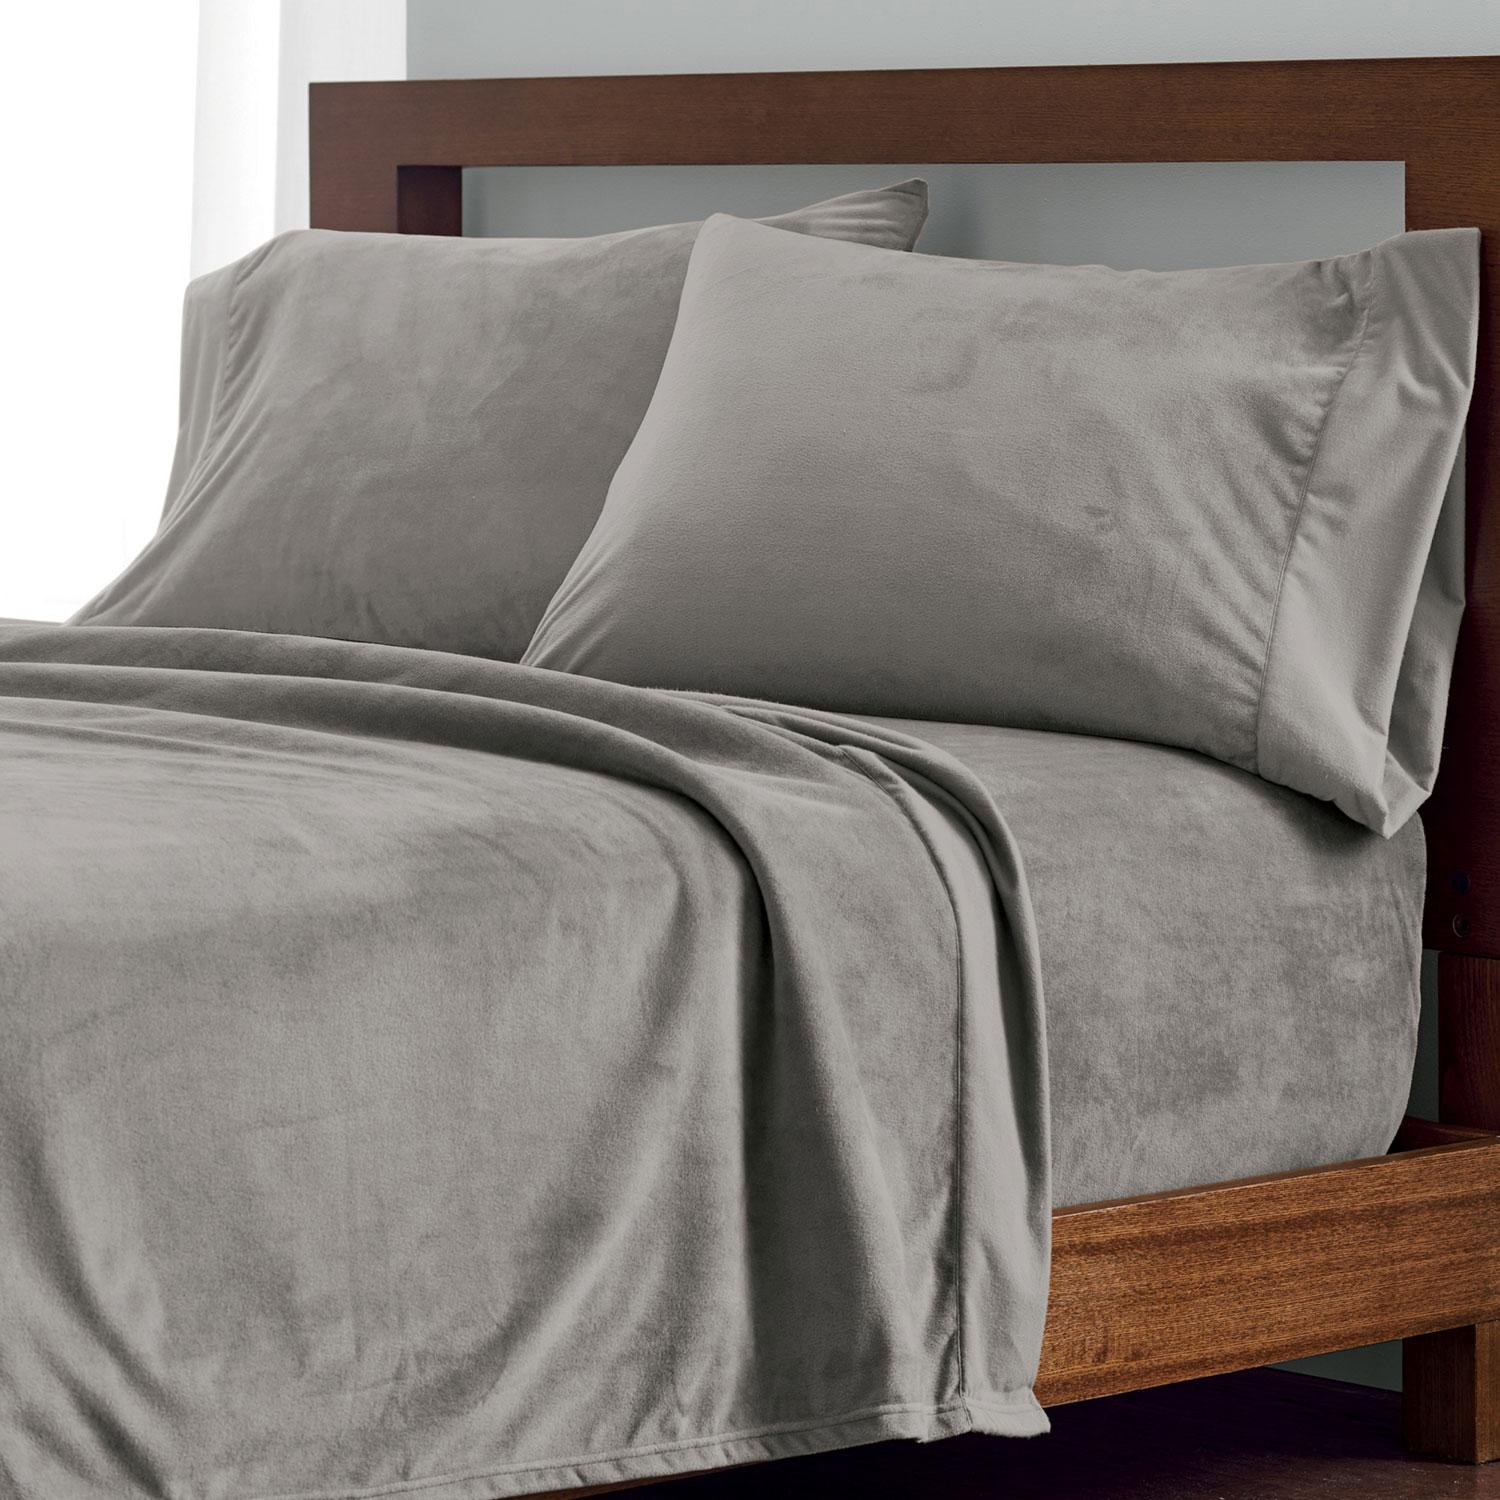 Soft Touch ULTRAFLEECE™ Sheets & Bedding Set | The Company ...